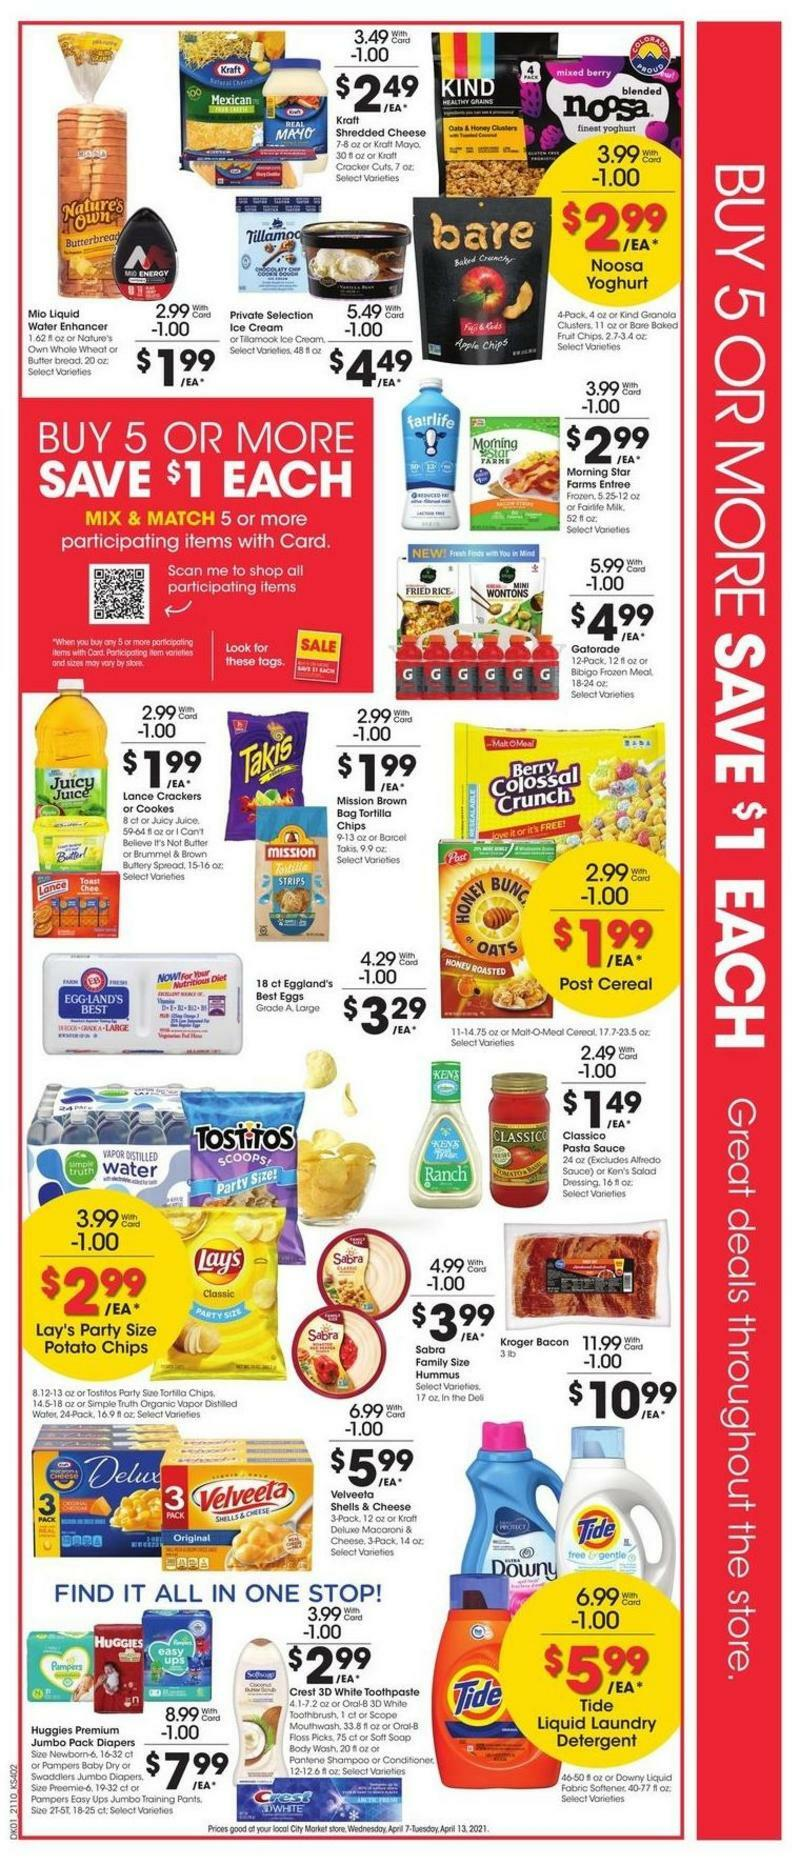 City Market Weekly Ad from April 7